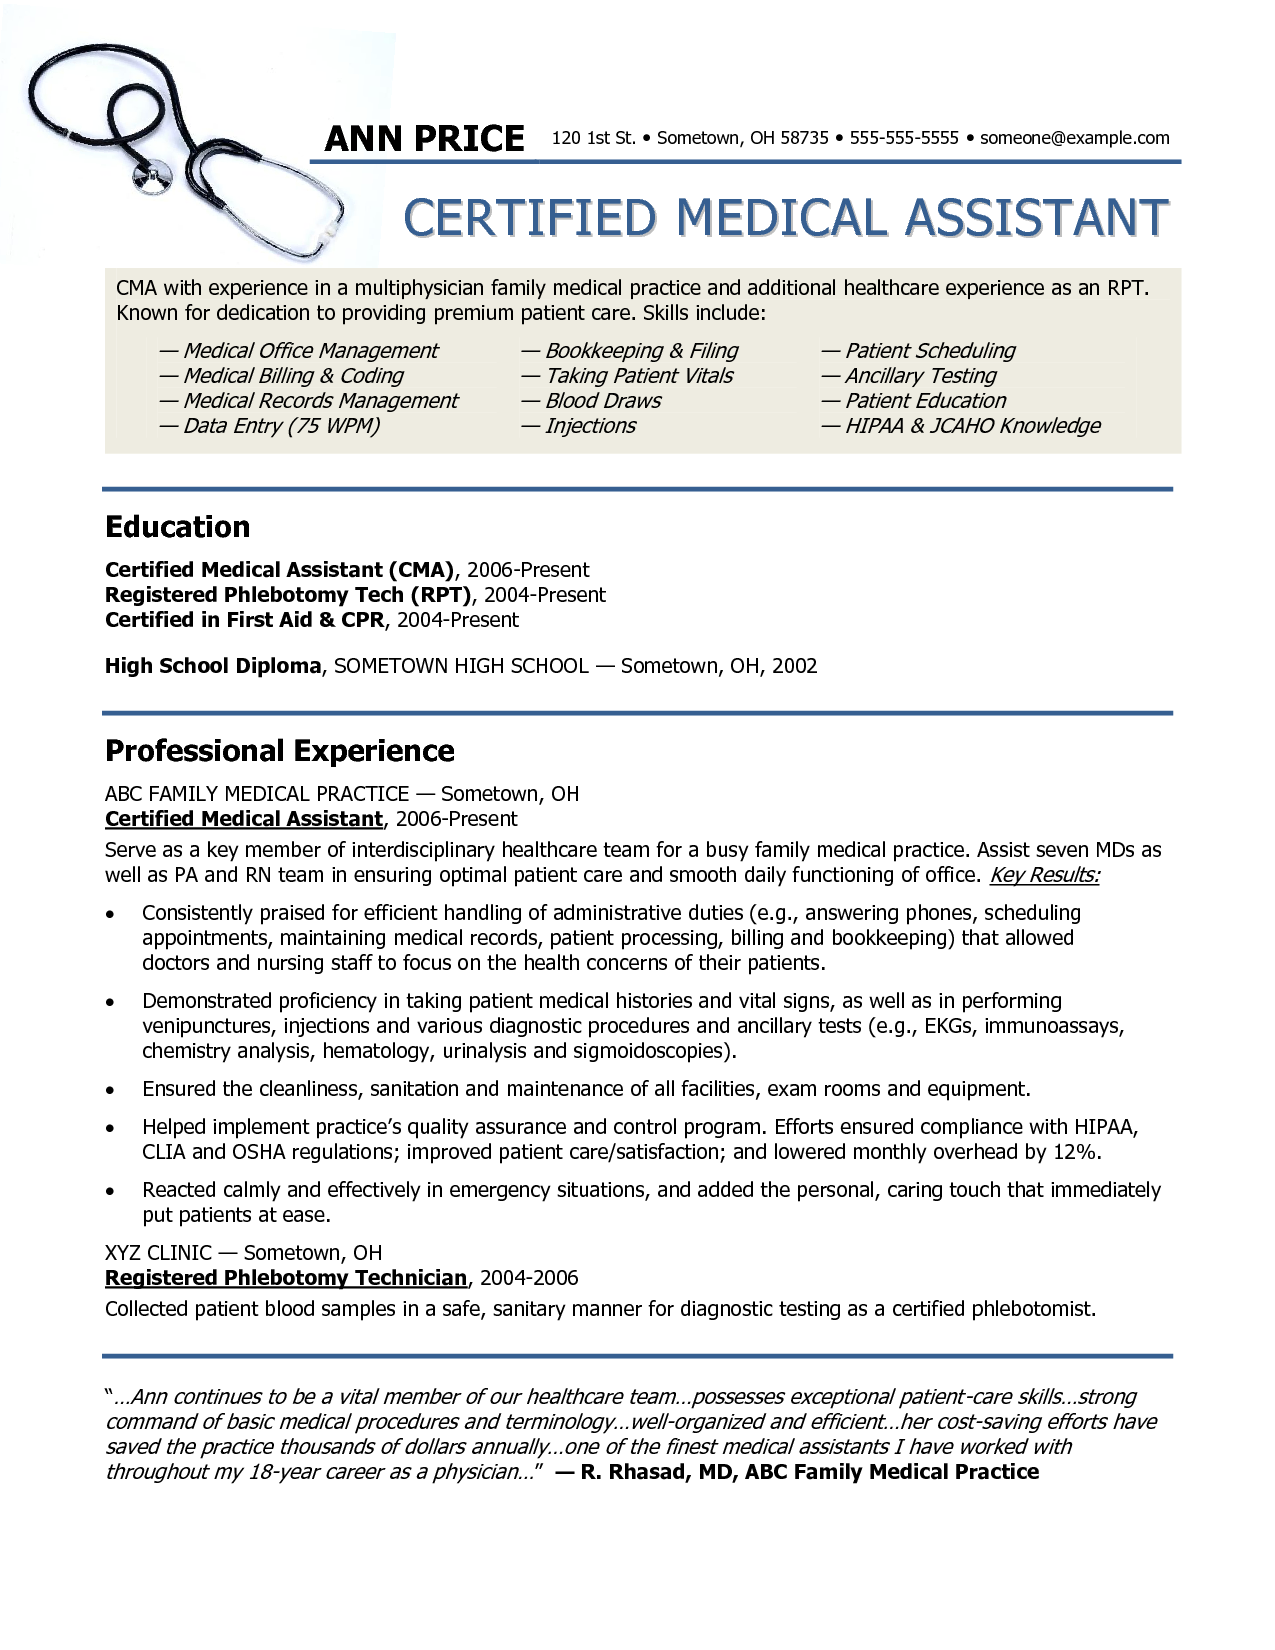 Awesome Certified Medical Assistant Resume Samples In Resumes For Medical Assistants